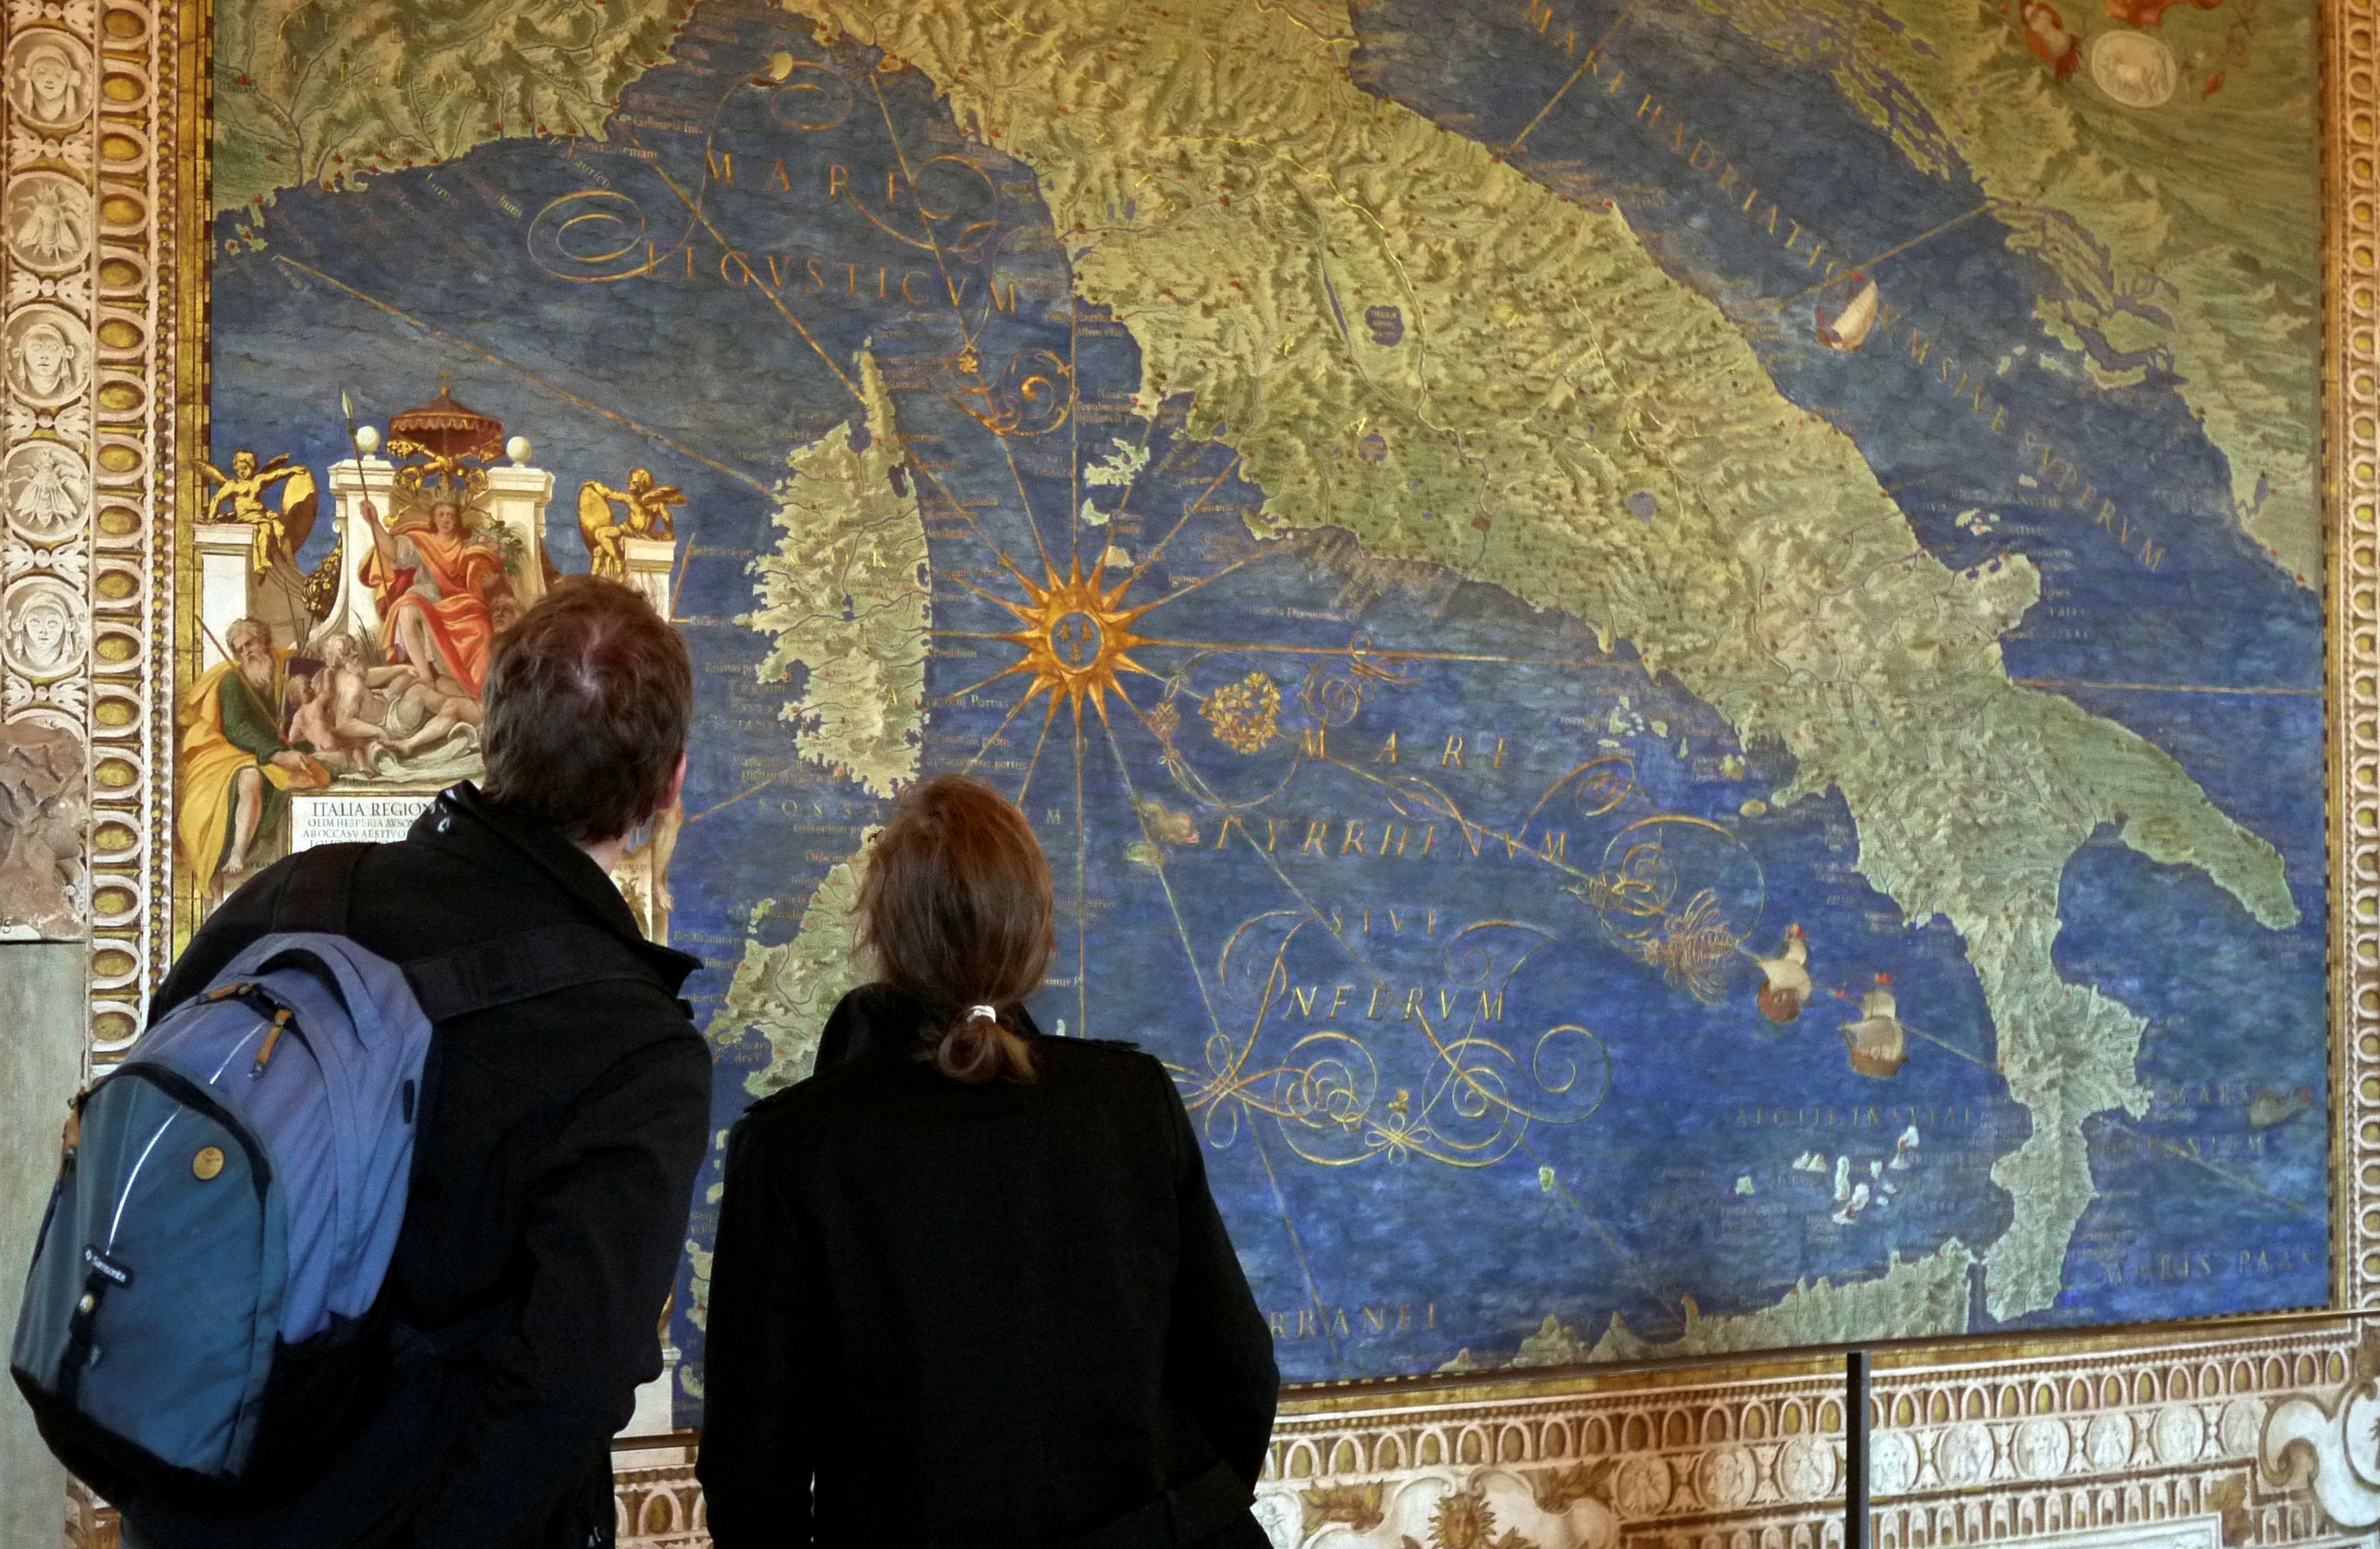 FILE PHOTO: A couple view a 16th century frescoe of Italy in the Vatican Museum's Gallery of Maps at the Vatican January 22, 2010. The maps in the gallery were commissioned by Pope Gregory XIII and depict all the regions of Italy and its principal cities at the time. REUTERS/Chris Helgren/File Photo